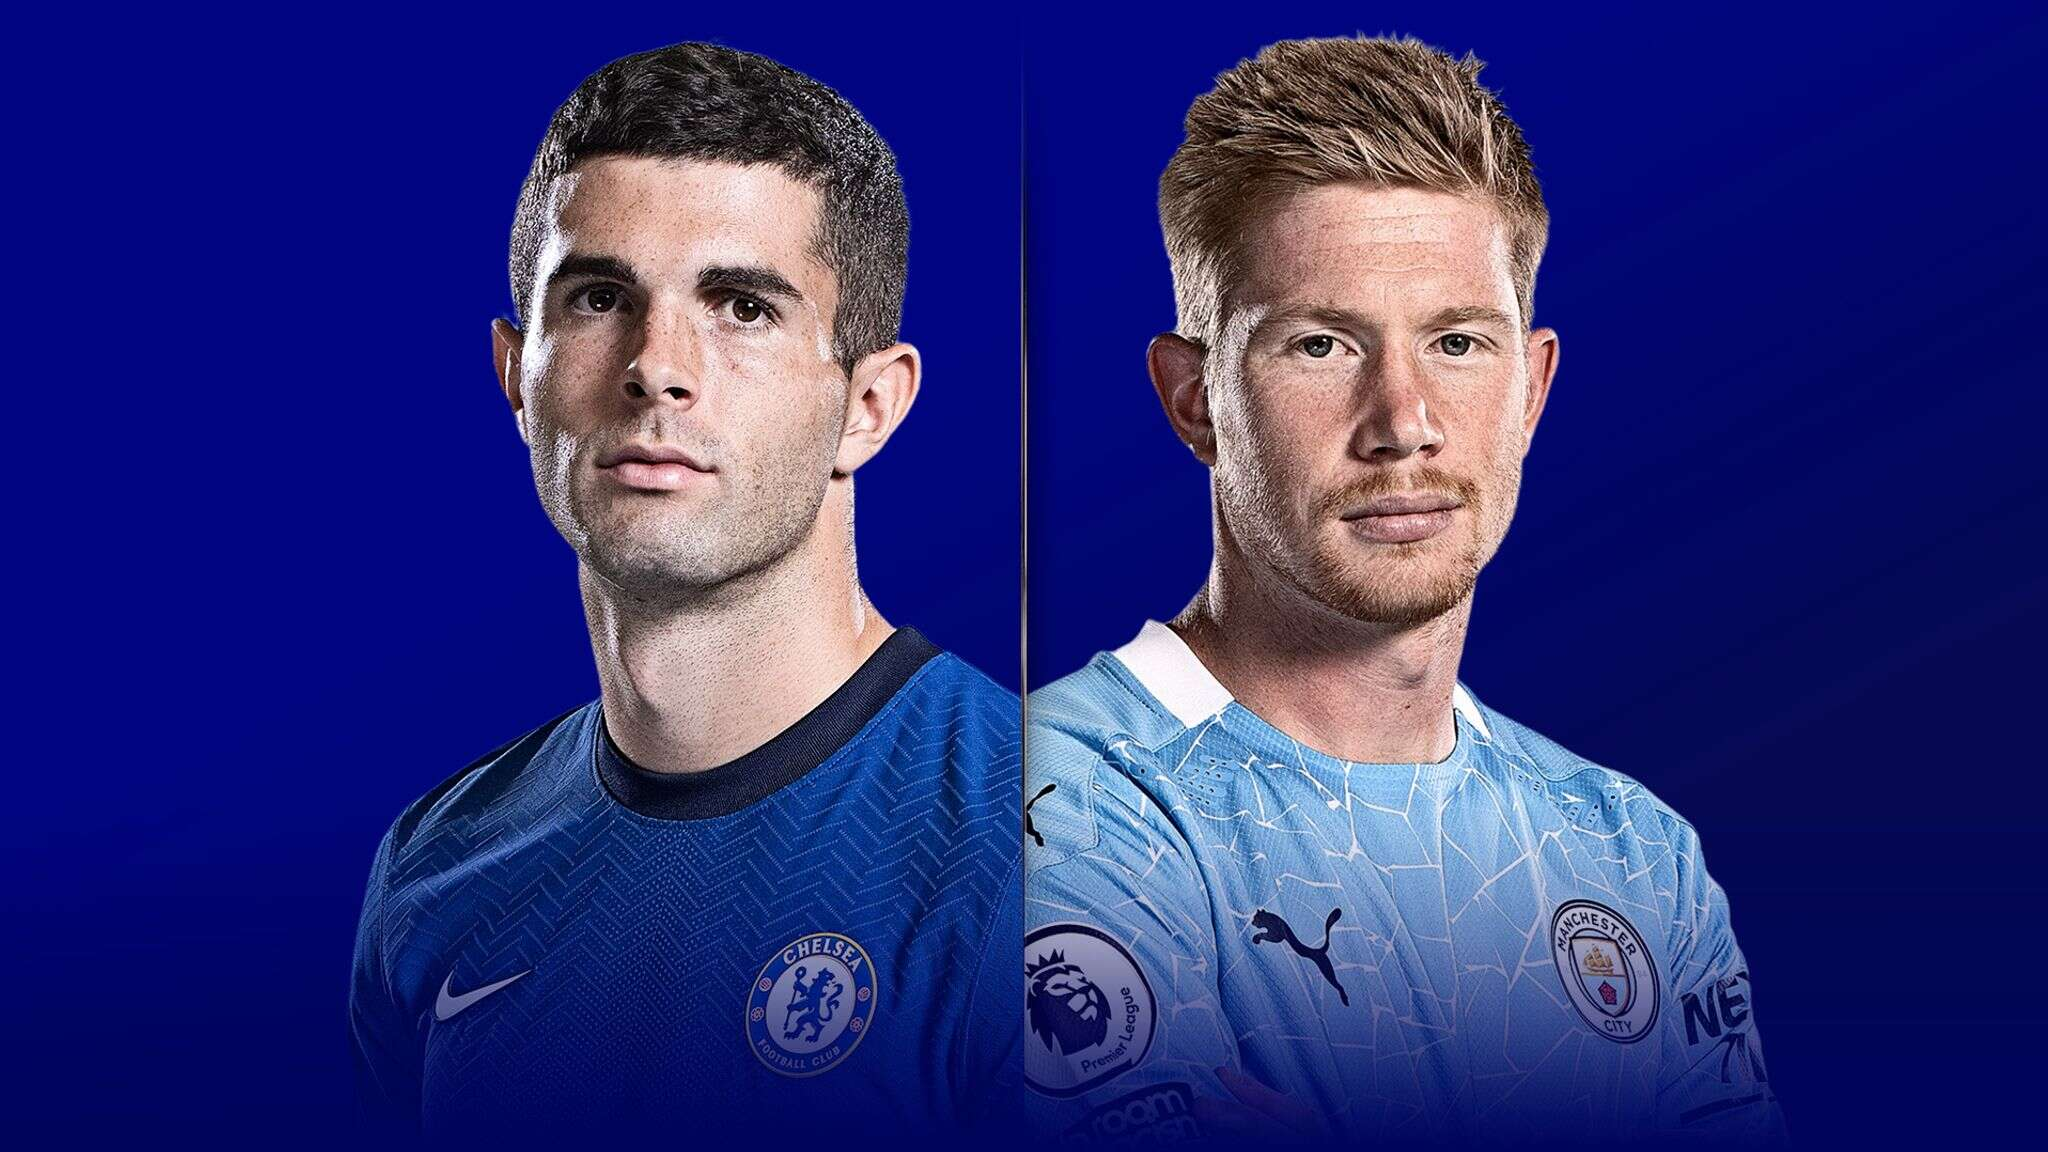 Chelsea hopeful of being back on winning ways as they host Manchester city at the Stamford Bridge